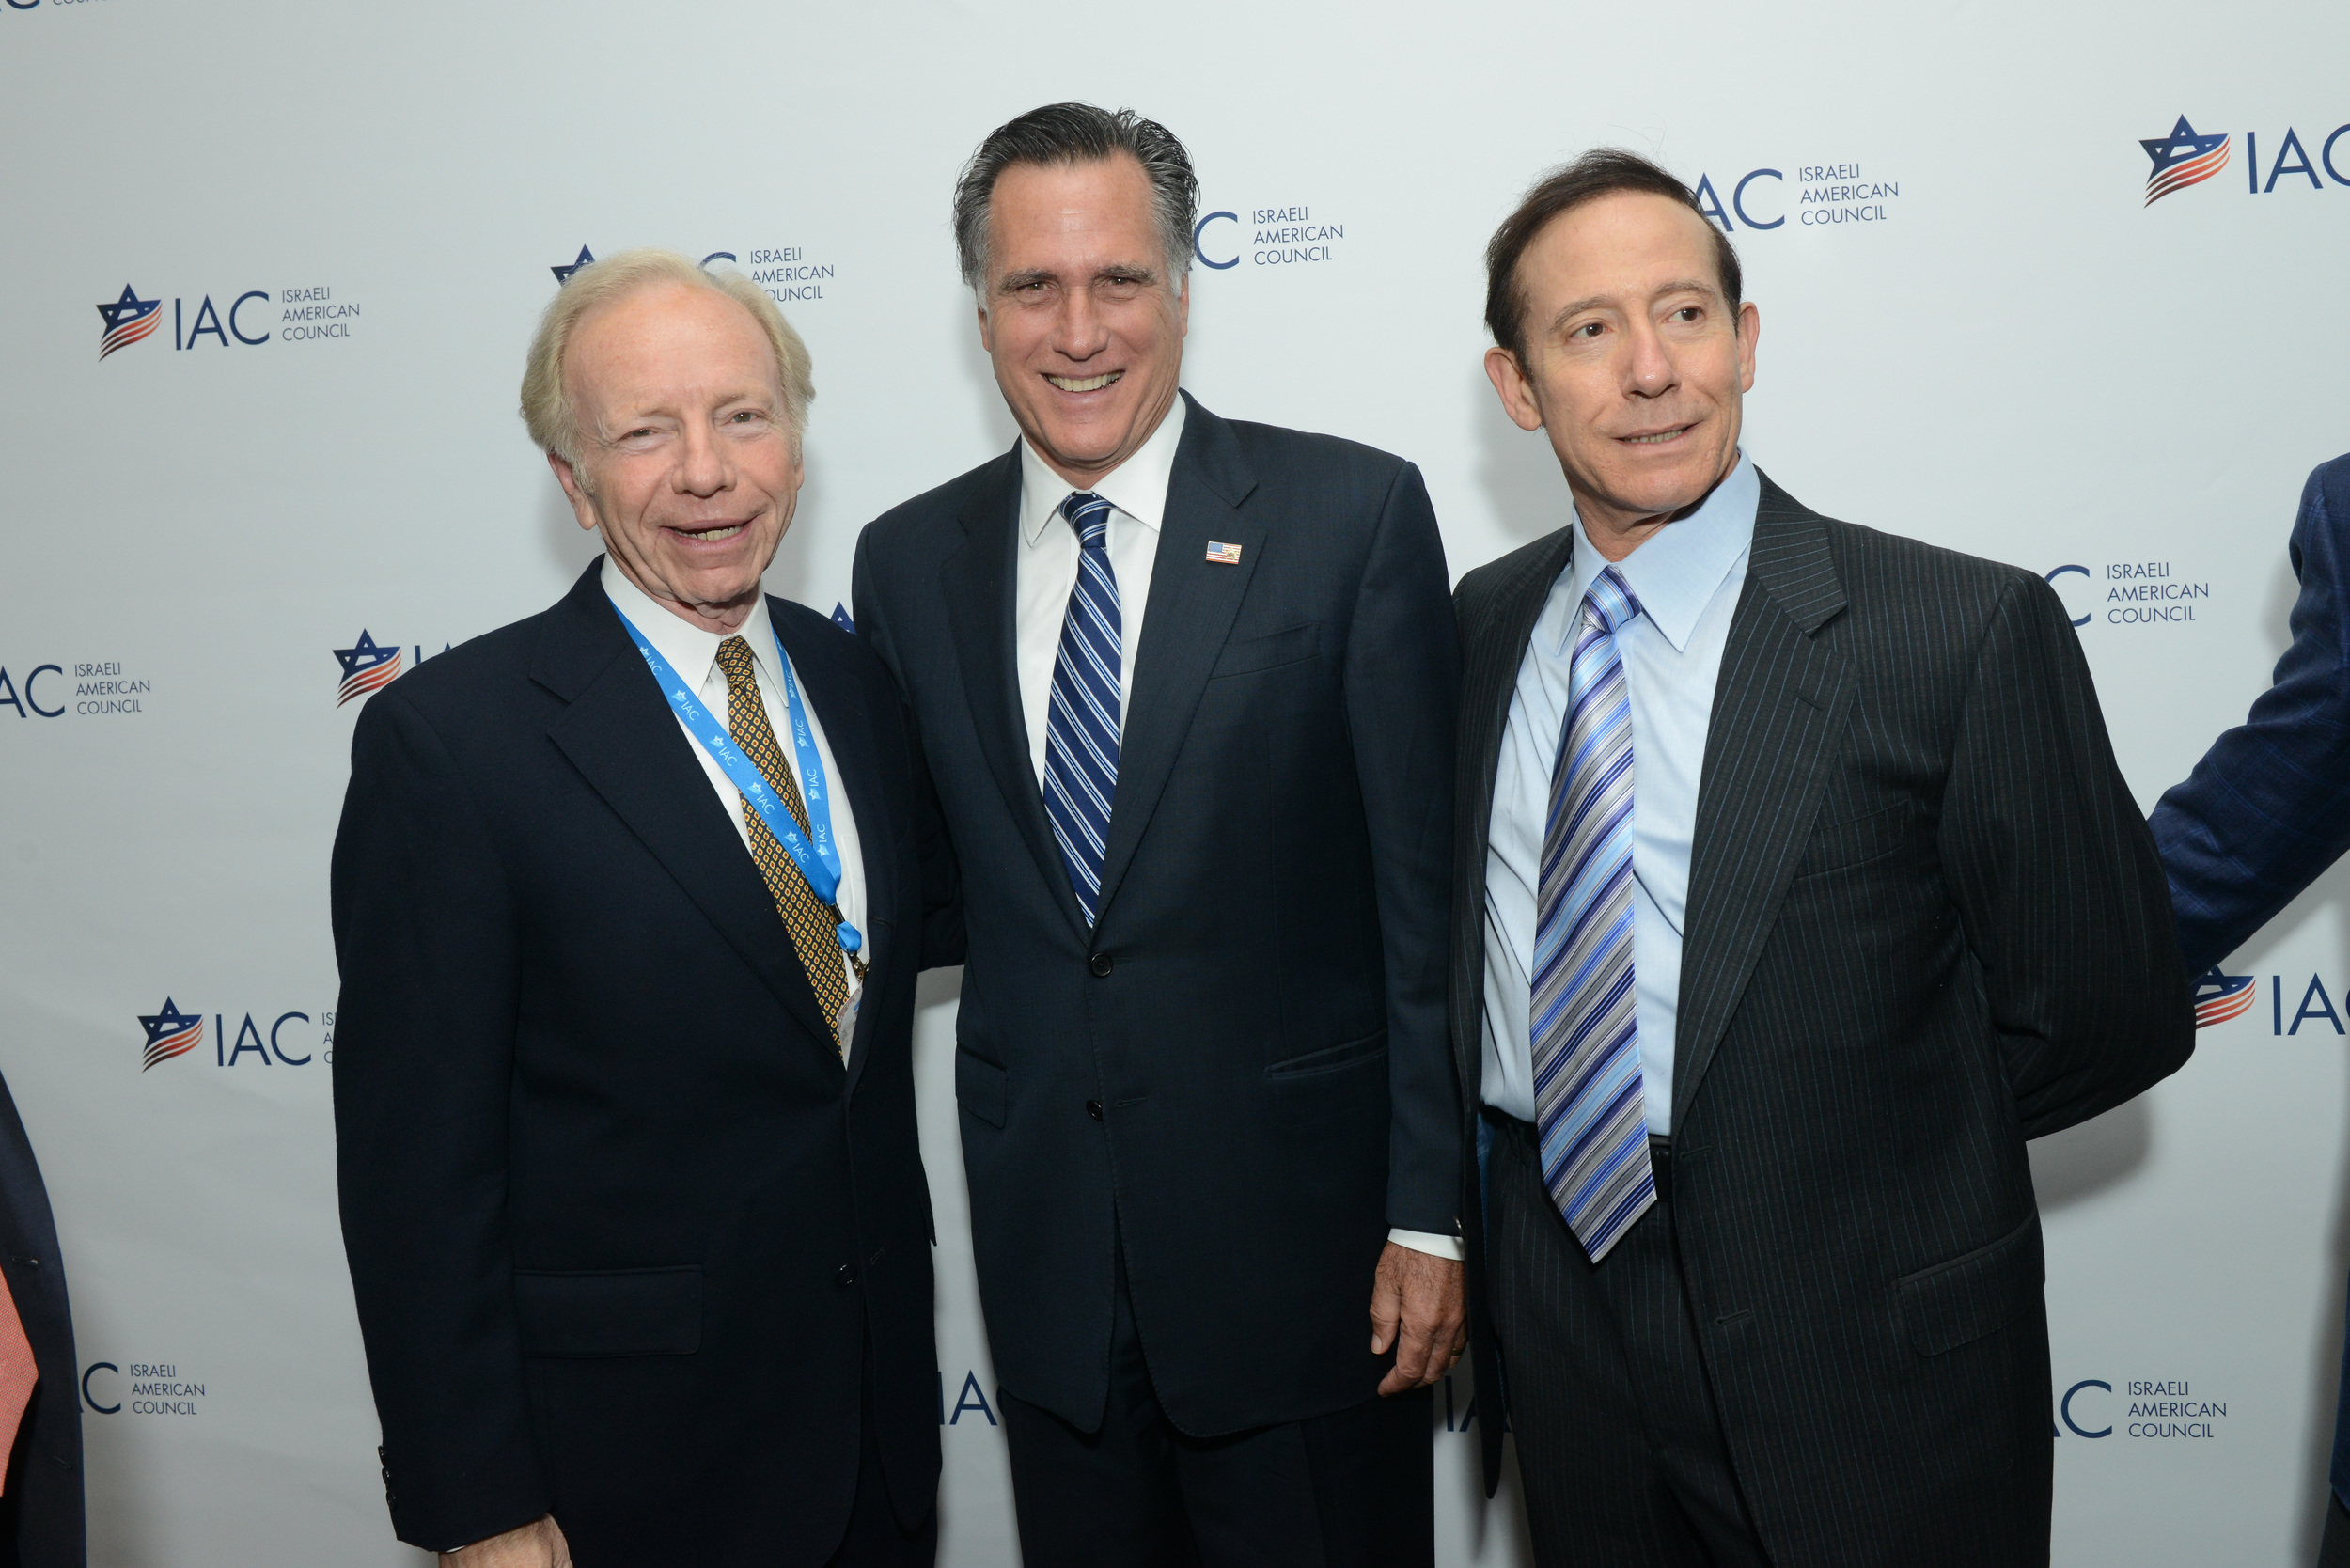 Click photo to download. Caption: From left to right: former Democratic vice presidential candidate Joe Lieberman, Republican presidential candidate Mitt Romney, and Jewish philanthropist  Adam Milstein  at the Israeli-American Council national conference in Washington in Nov.2014. Credit: Shahar Azran.